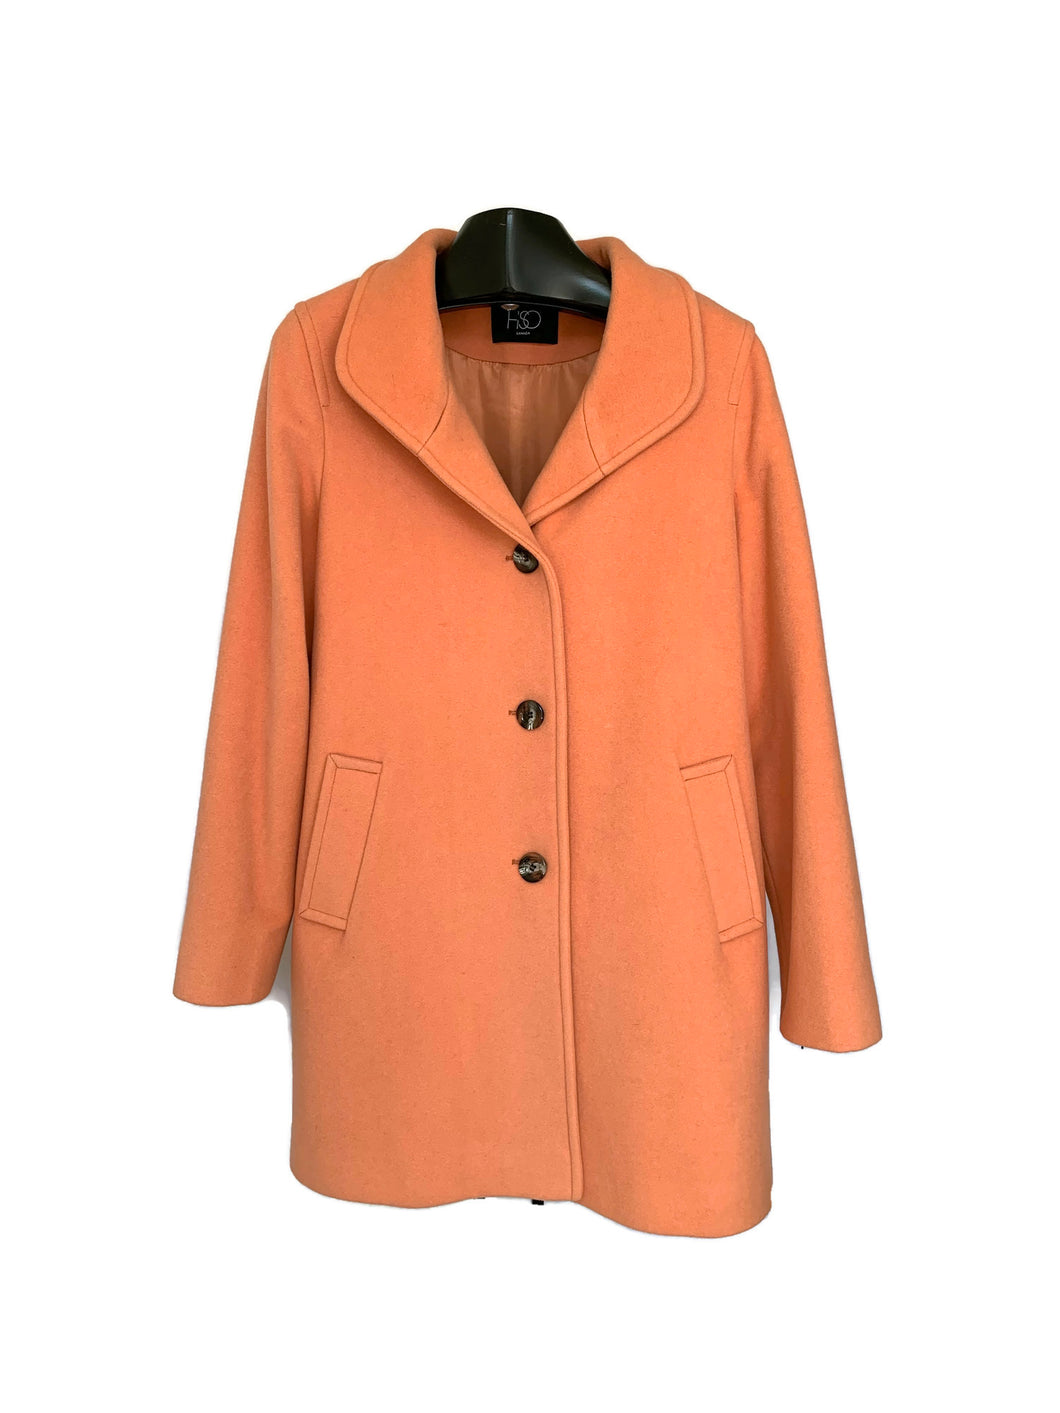 Apricot Cashmere / Wool Stand Up Collar Coat